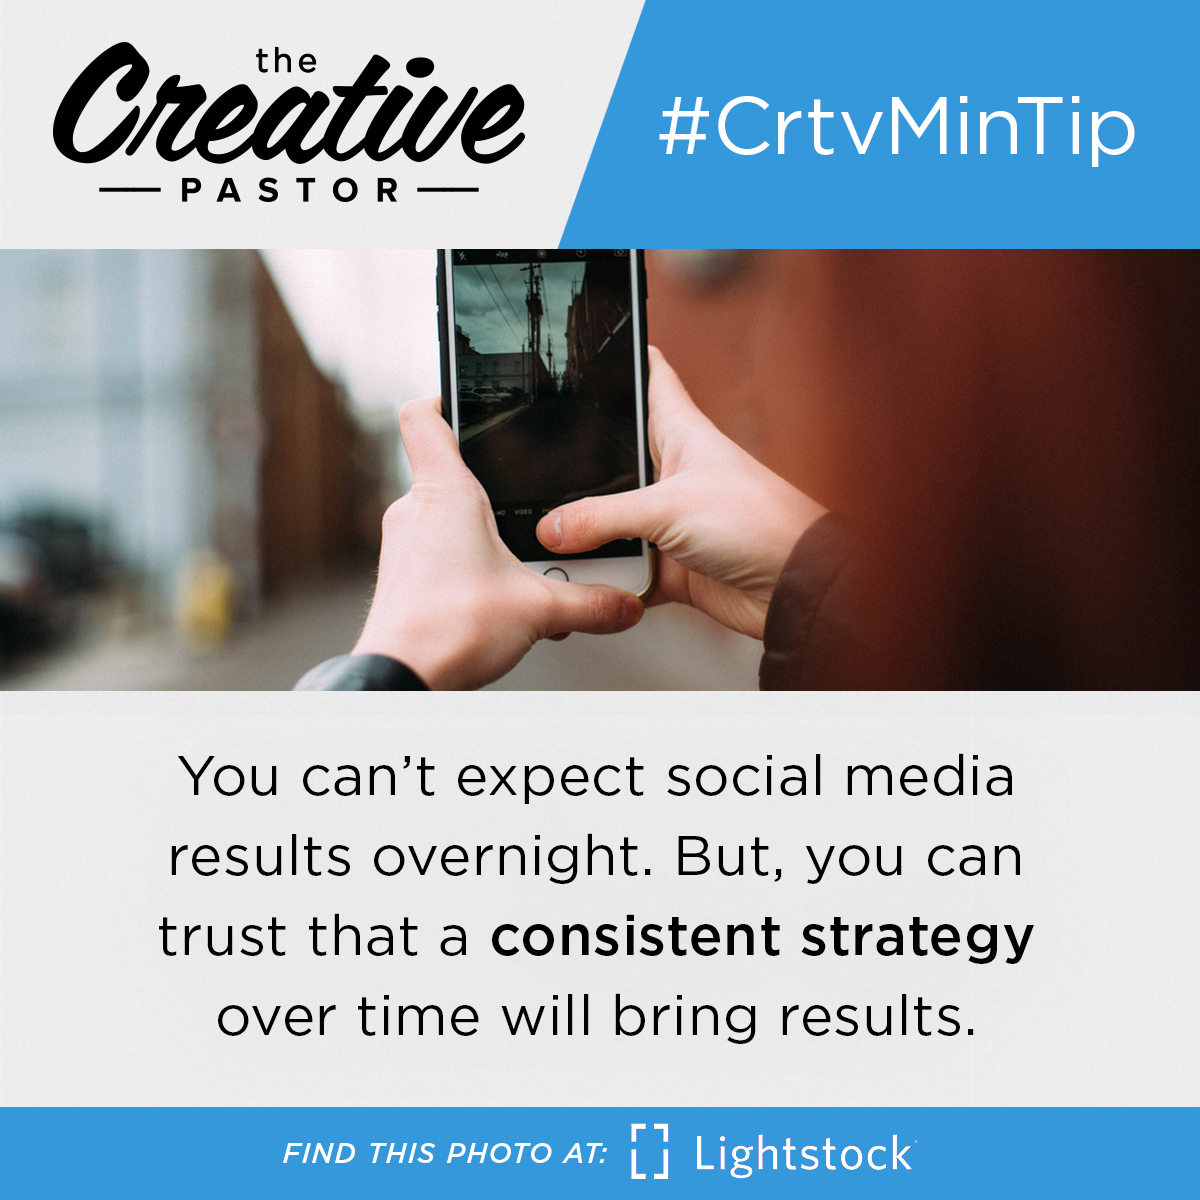 #CrtvMinTip: You can't expect social media results overnight. But, you can trust that a consistent strategy over time will bring results.